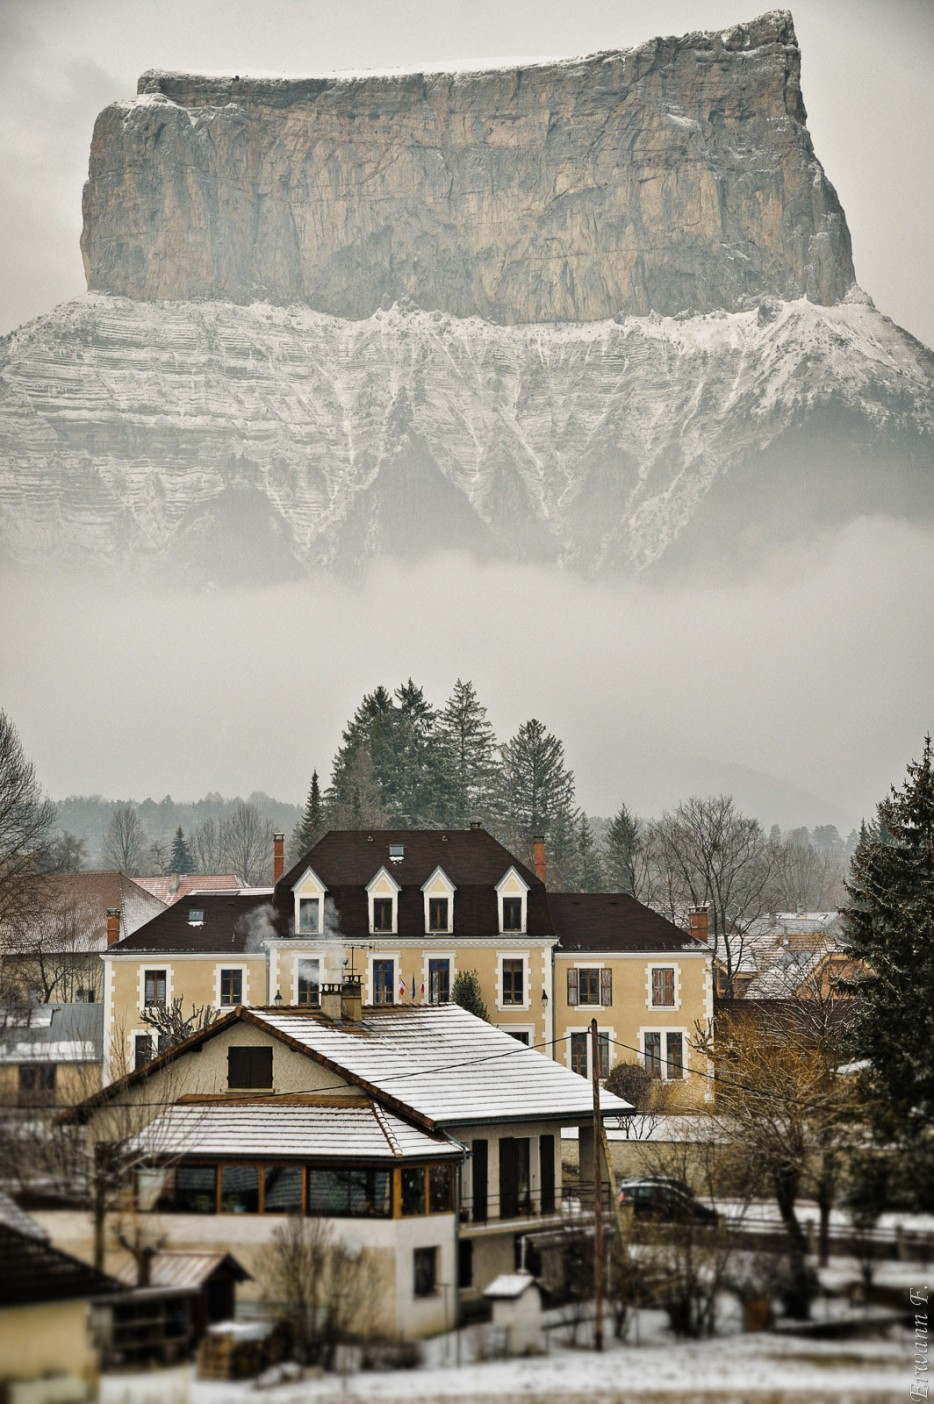 9. Chichilianne, Rhone Alpes in France